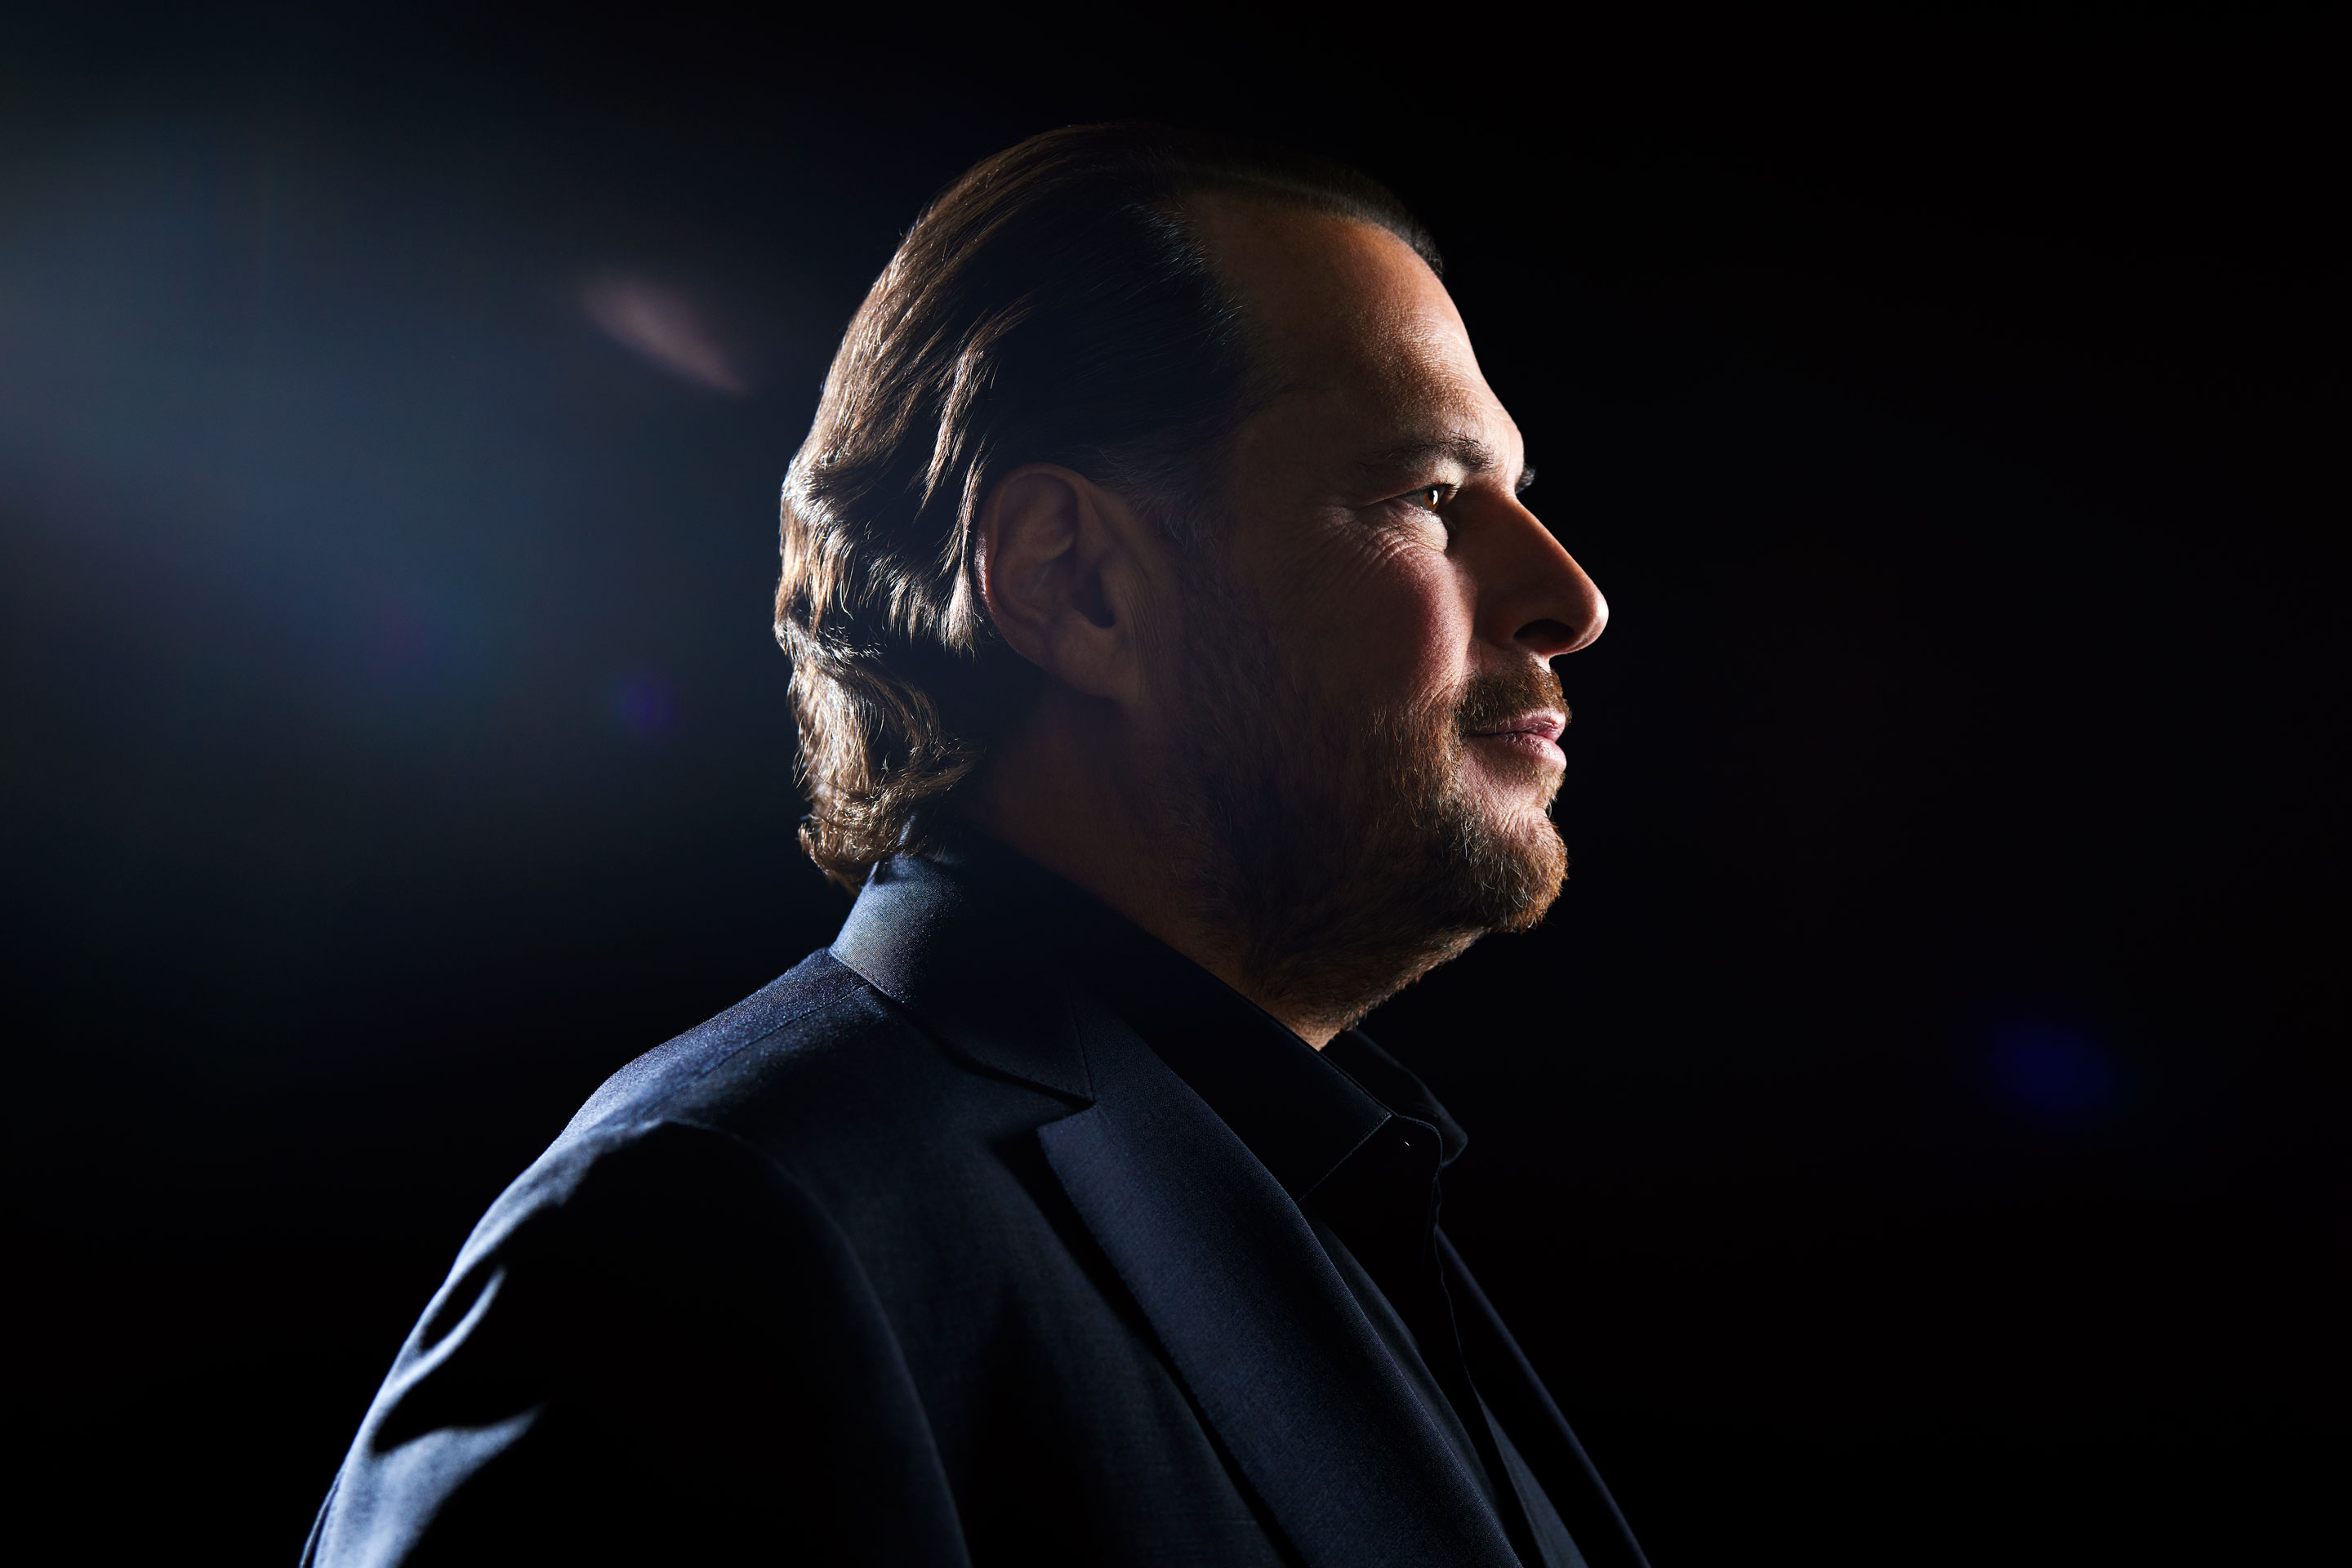 Marc Benioff photographed at the Salesforce East tower in San Francisco on Oct. 11.